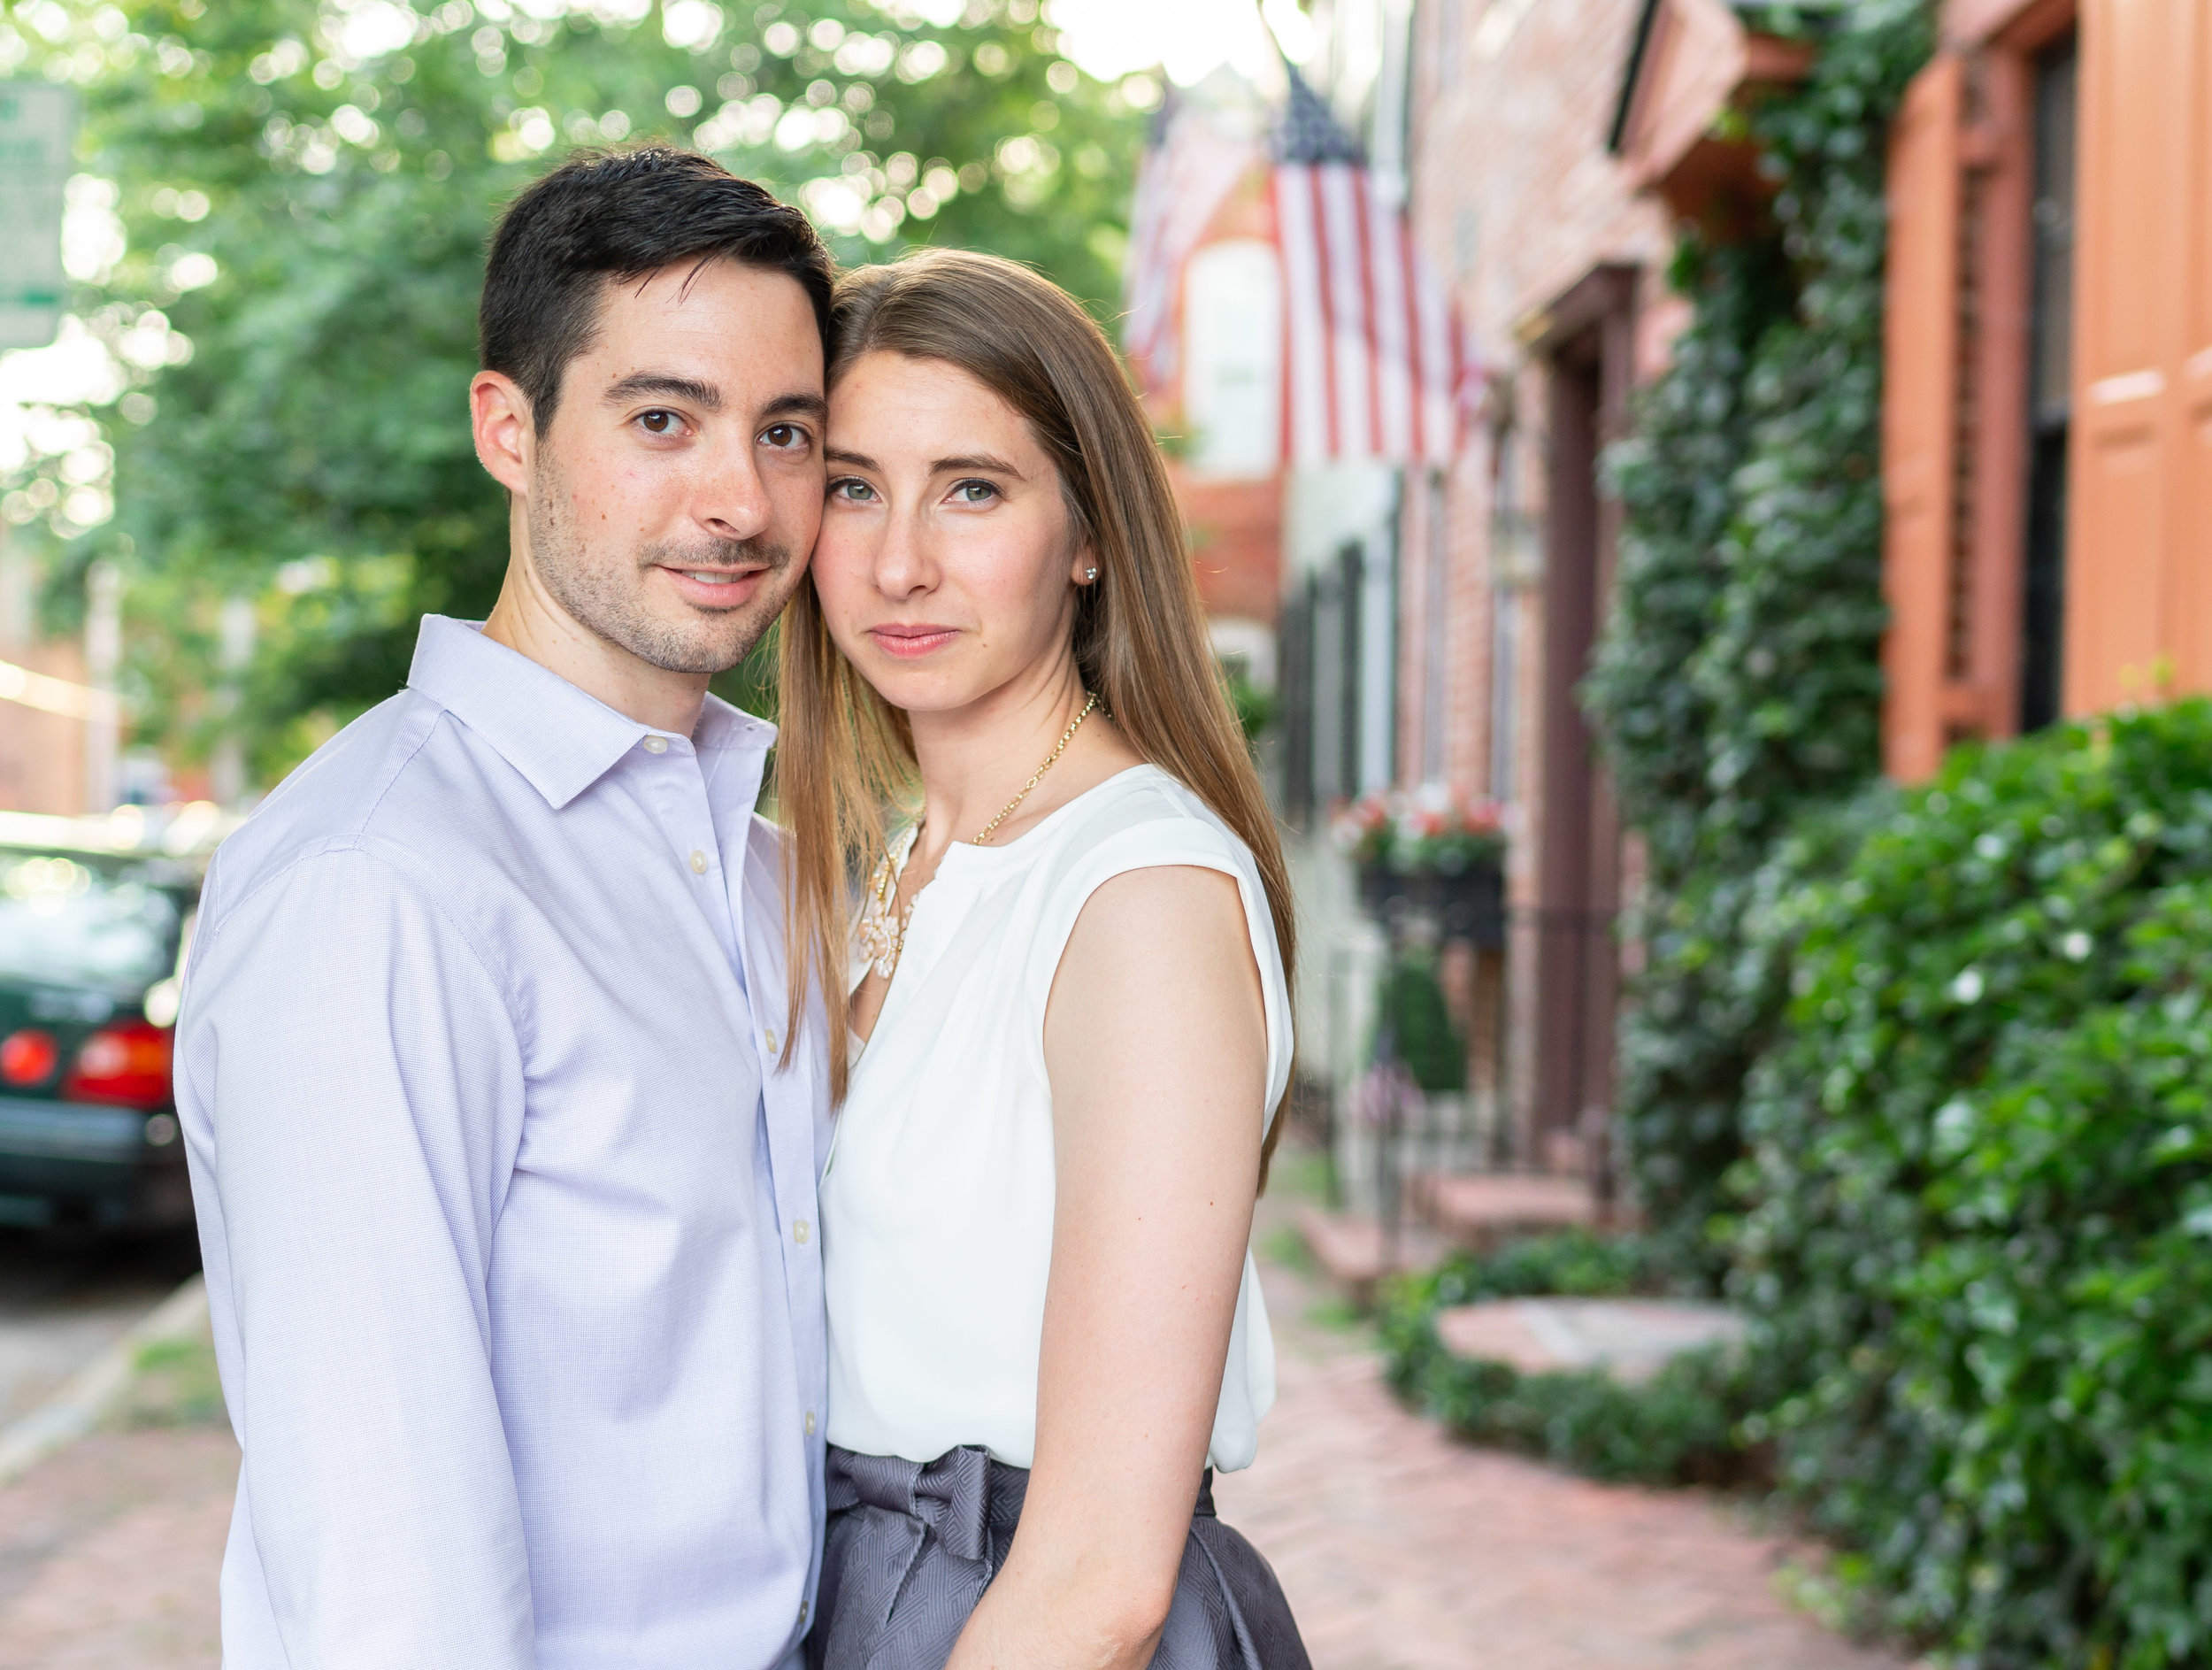 Engagement session at golden hour with a7riii in old town alexandria